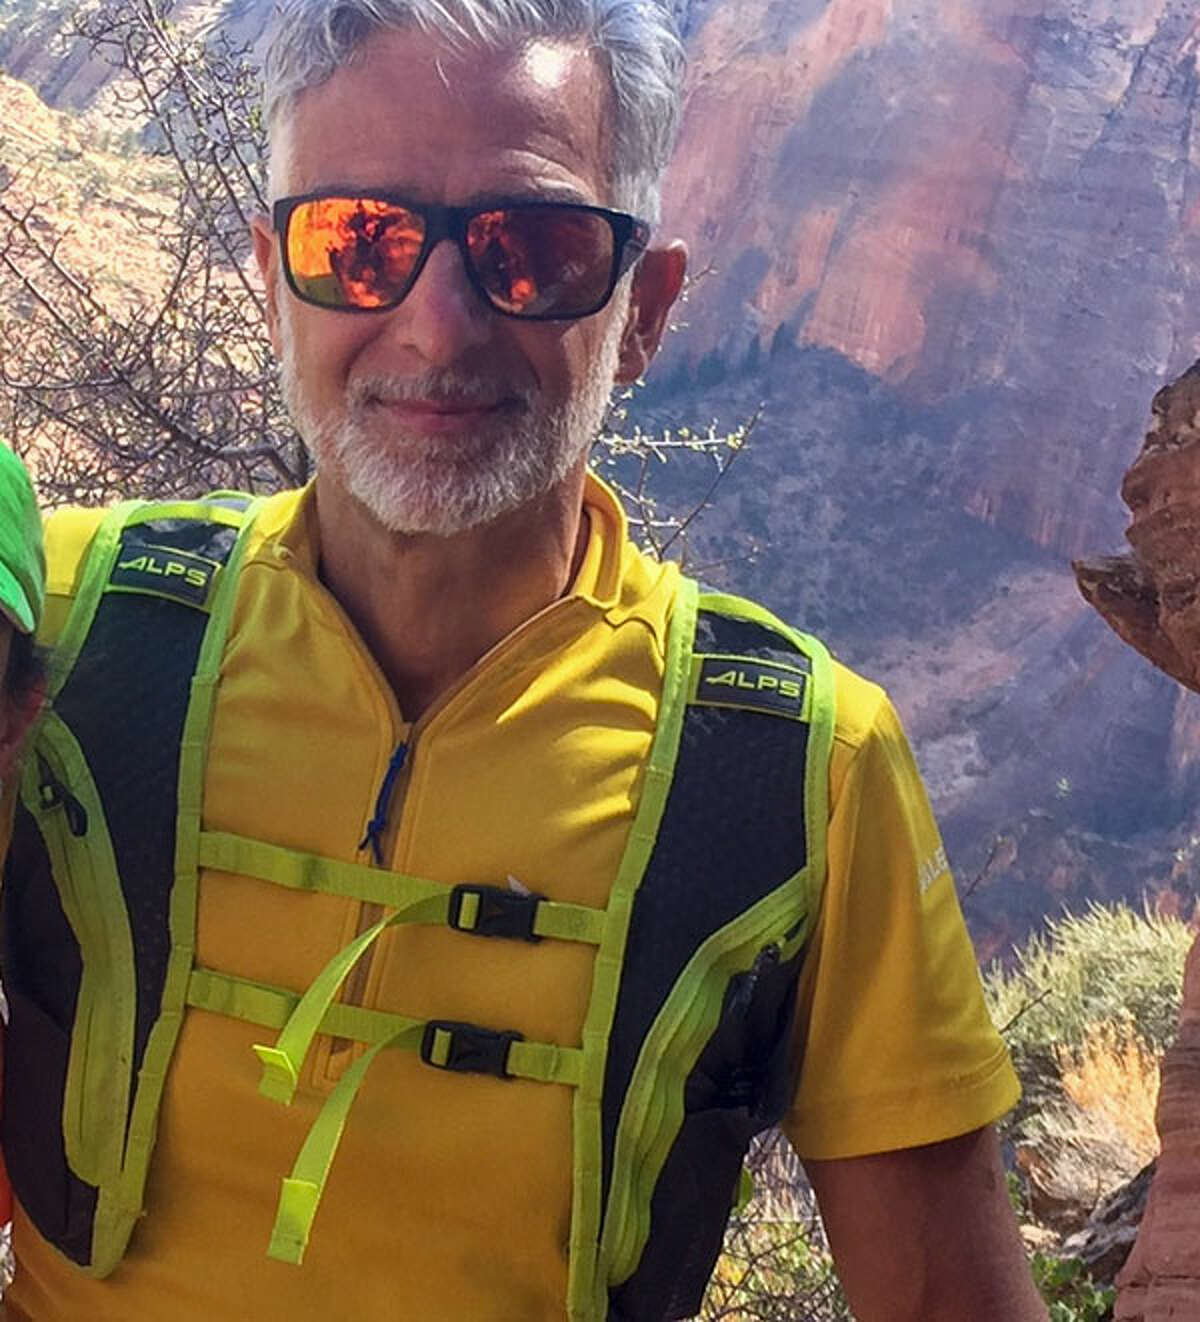 Fred Zalokar went missing July 17 at Yosemite during a day hike from Happy Isles to the summit of Mount Clark, the park said.